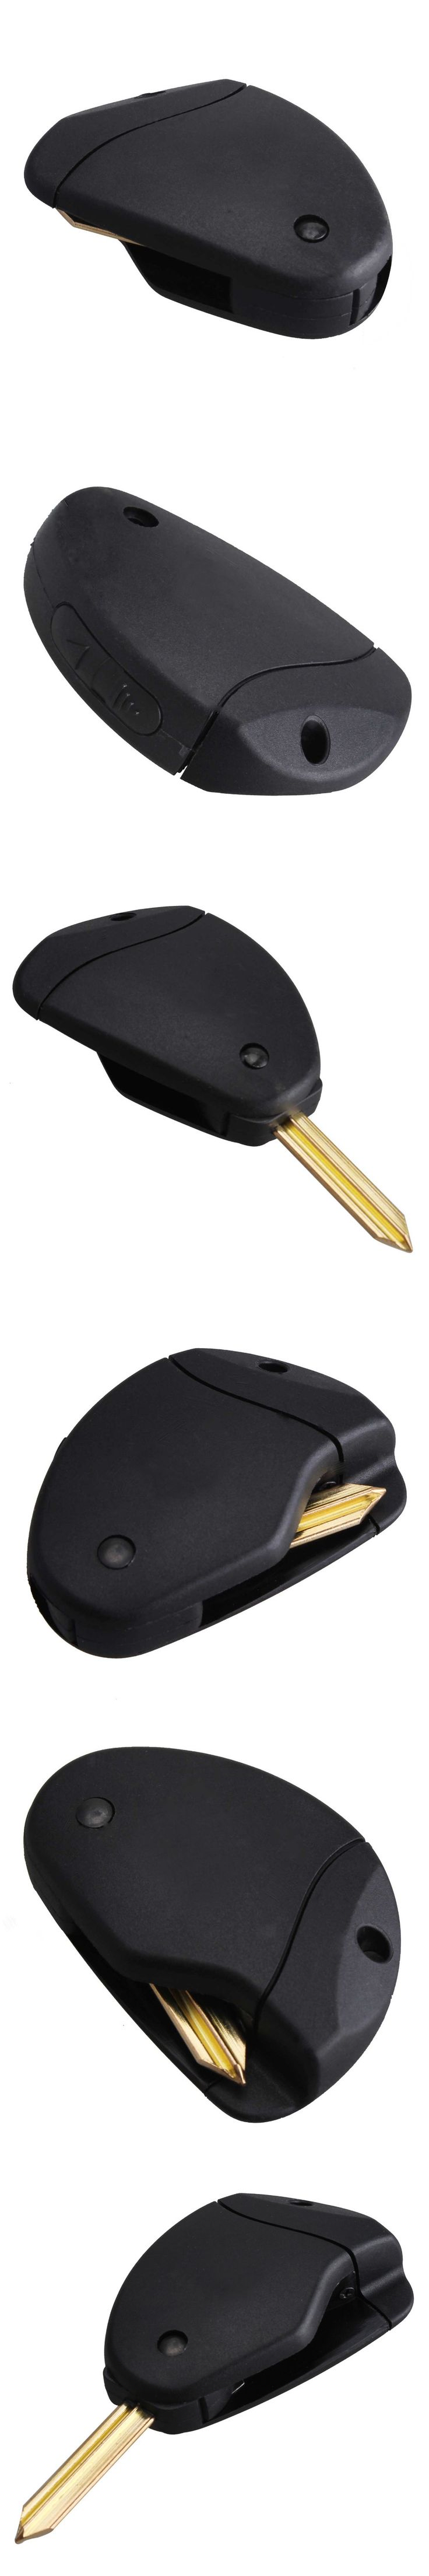 3 Buttons Uncut Blade Remote Car Key Refit Cover Case Shell For Citroen Evasion/Synergie/Xsara/Xantia Refit Key Shell Case Cover